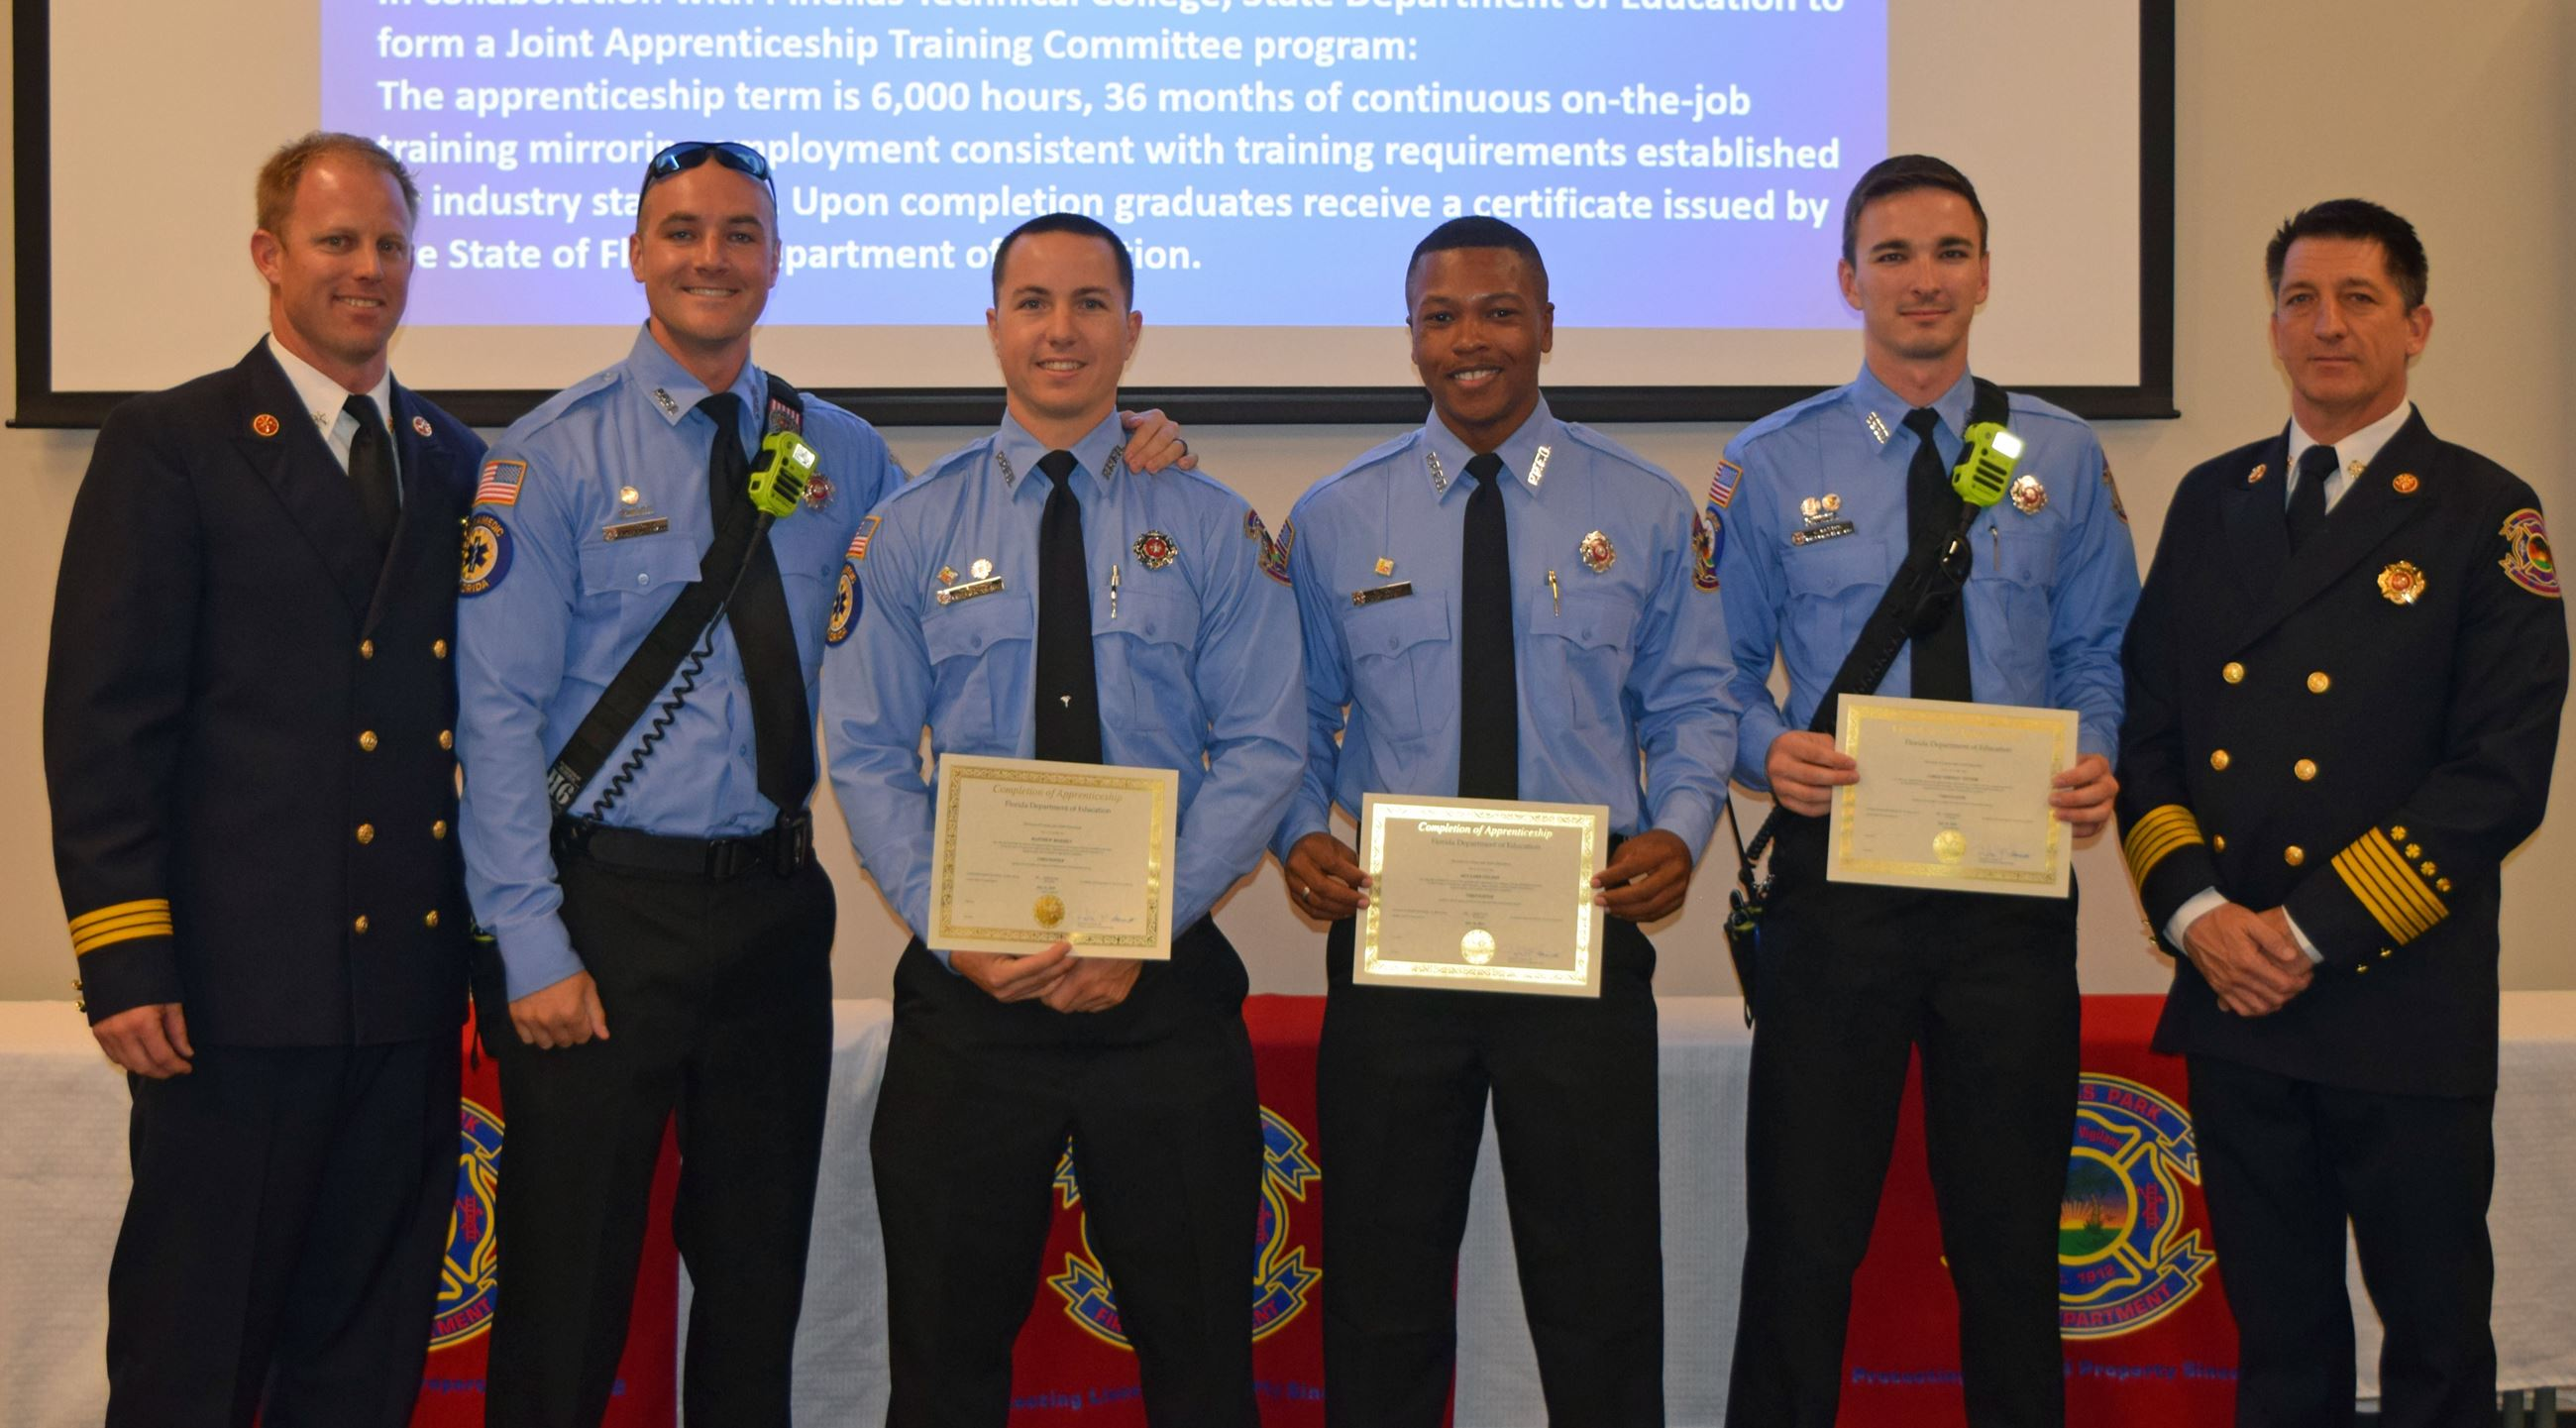 Four firefighters in dress uniform holding certificates of achievement